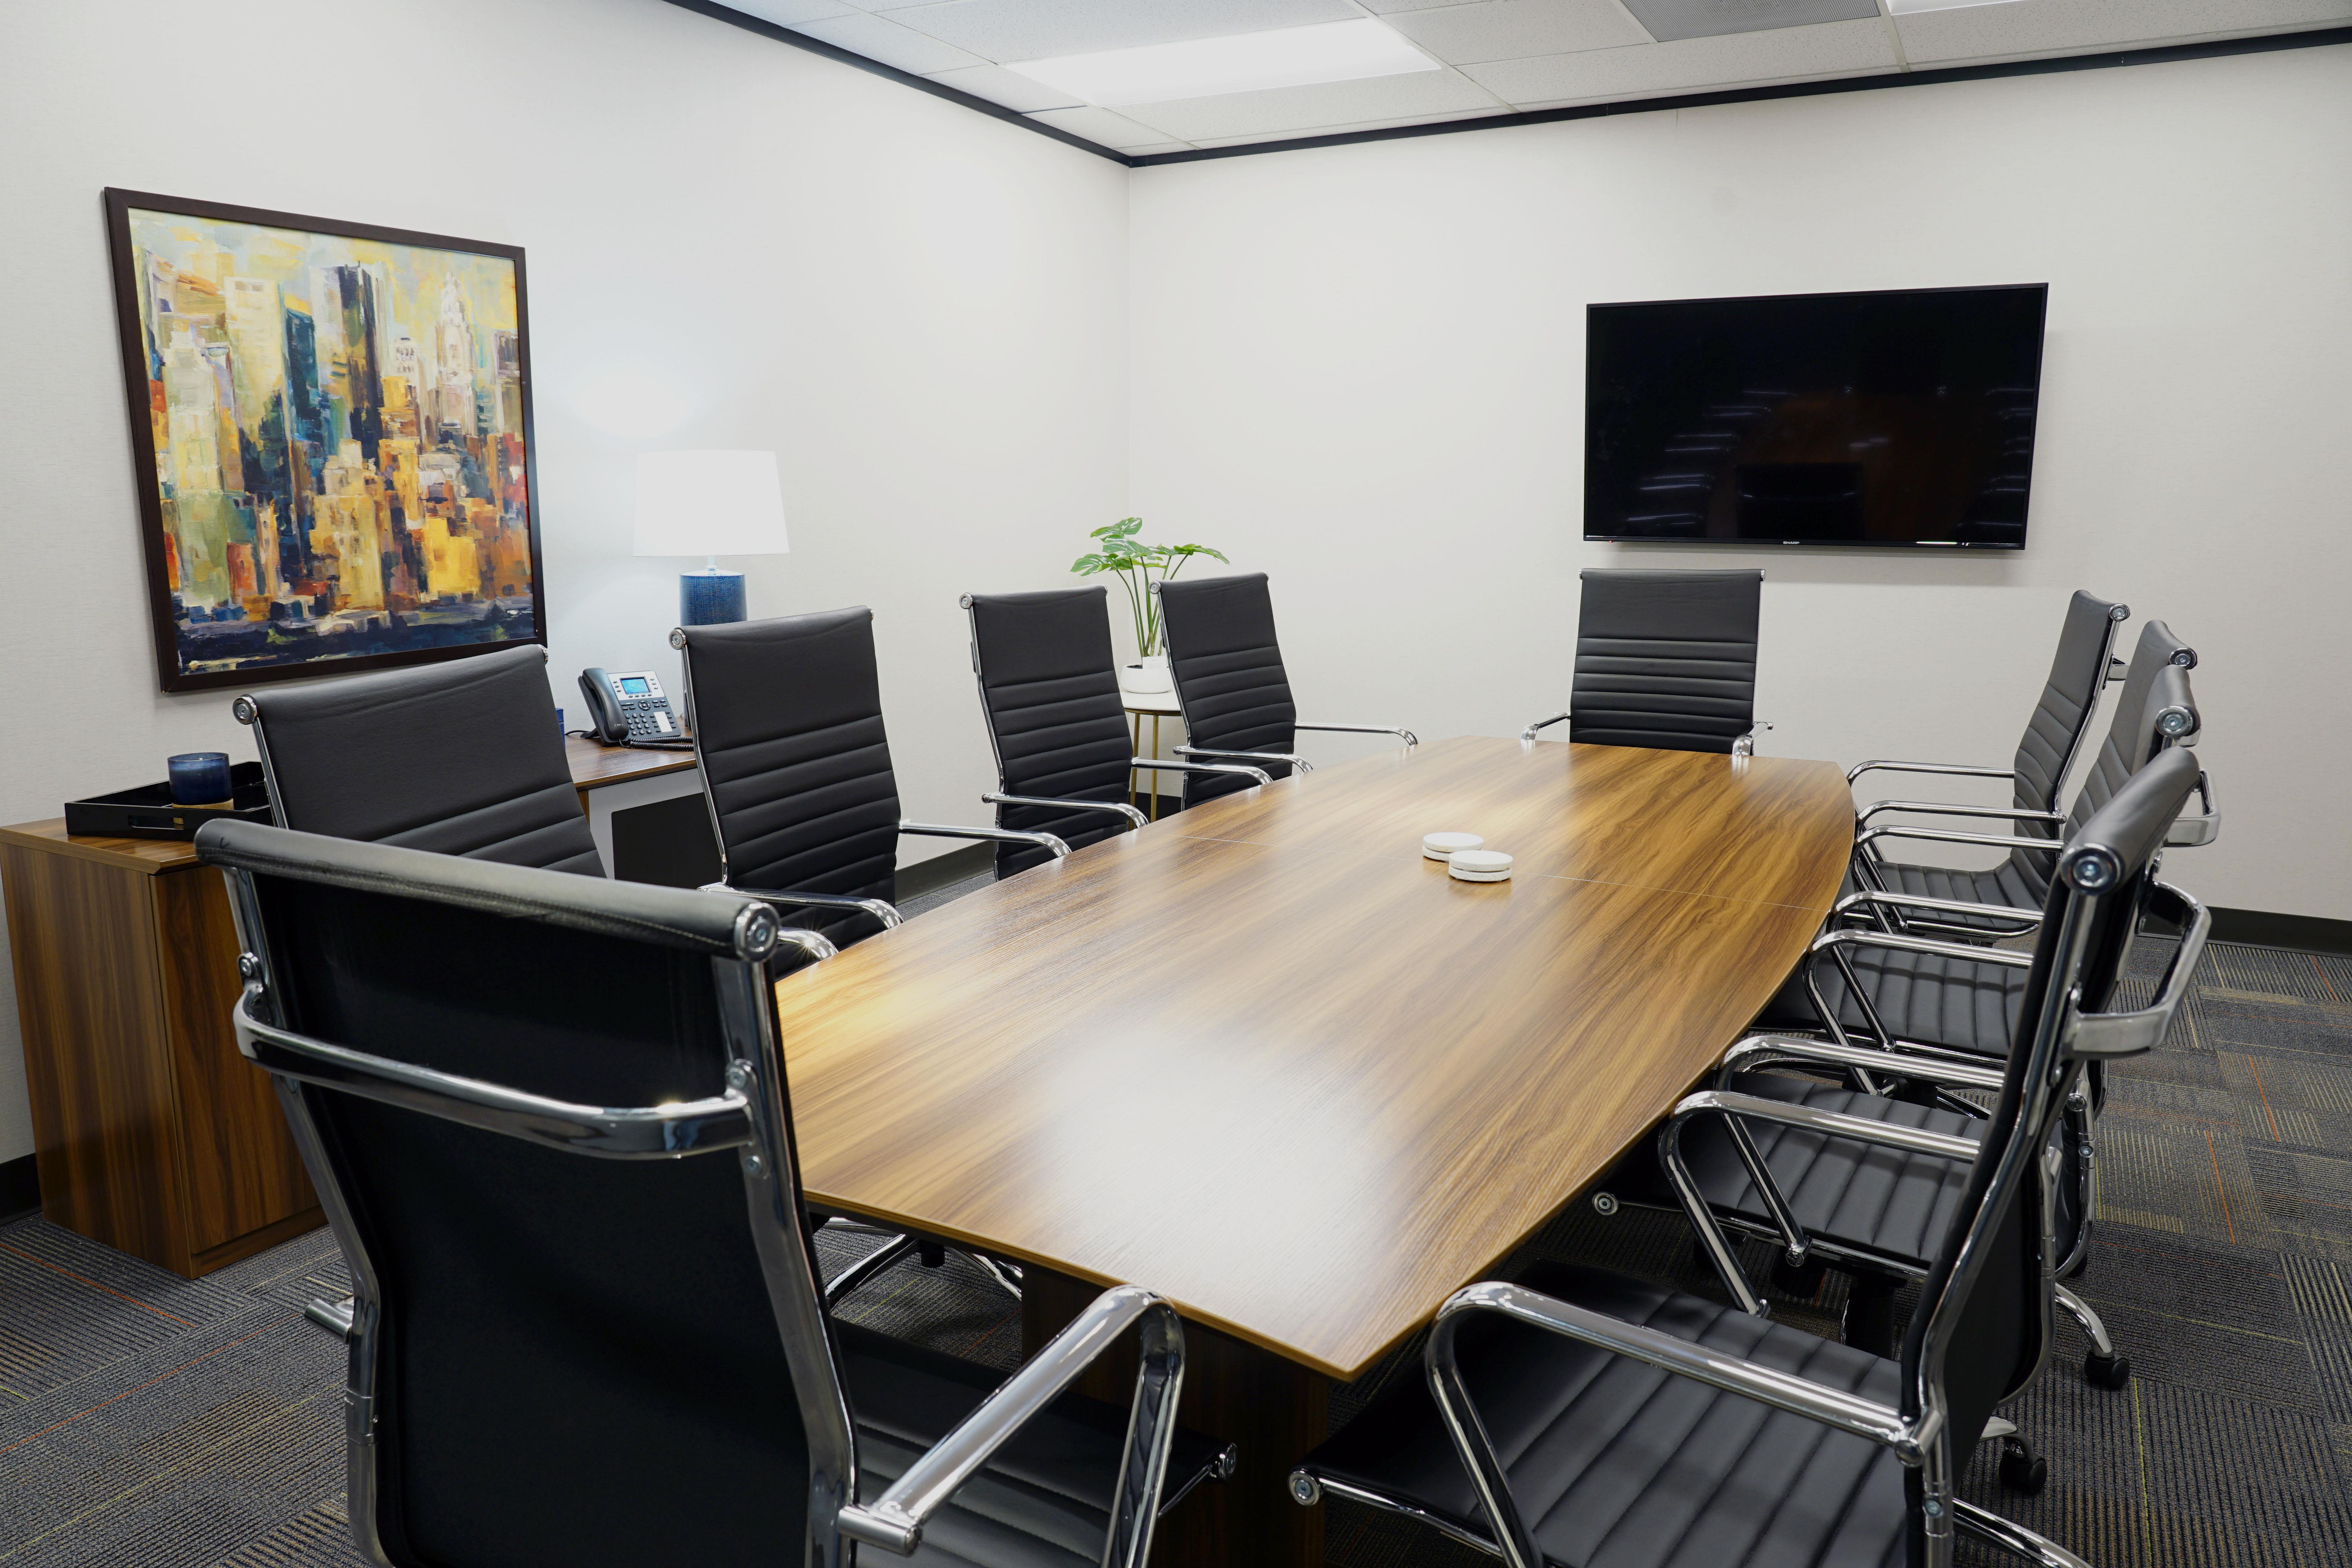 Executive Workspace @ Palisades Central 1 - Medium Conference Room